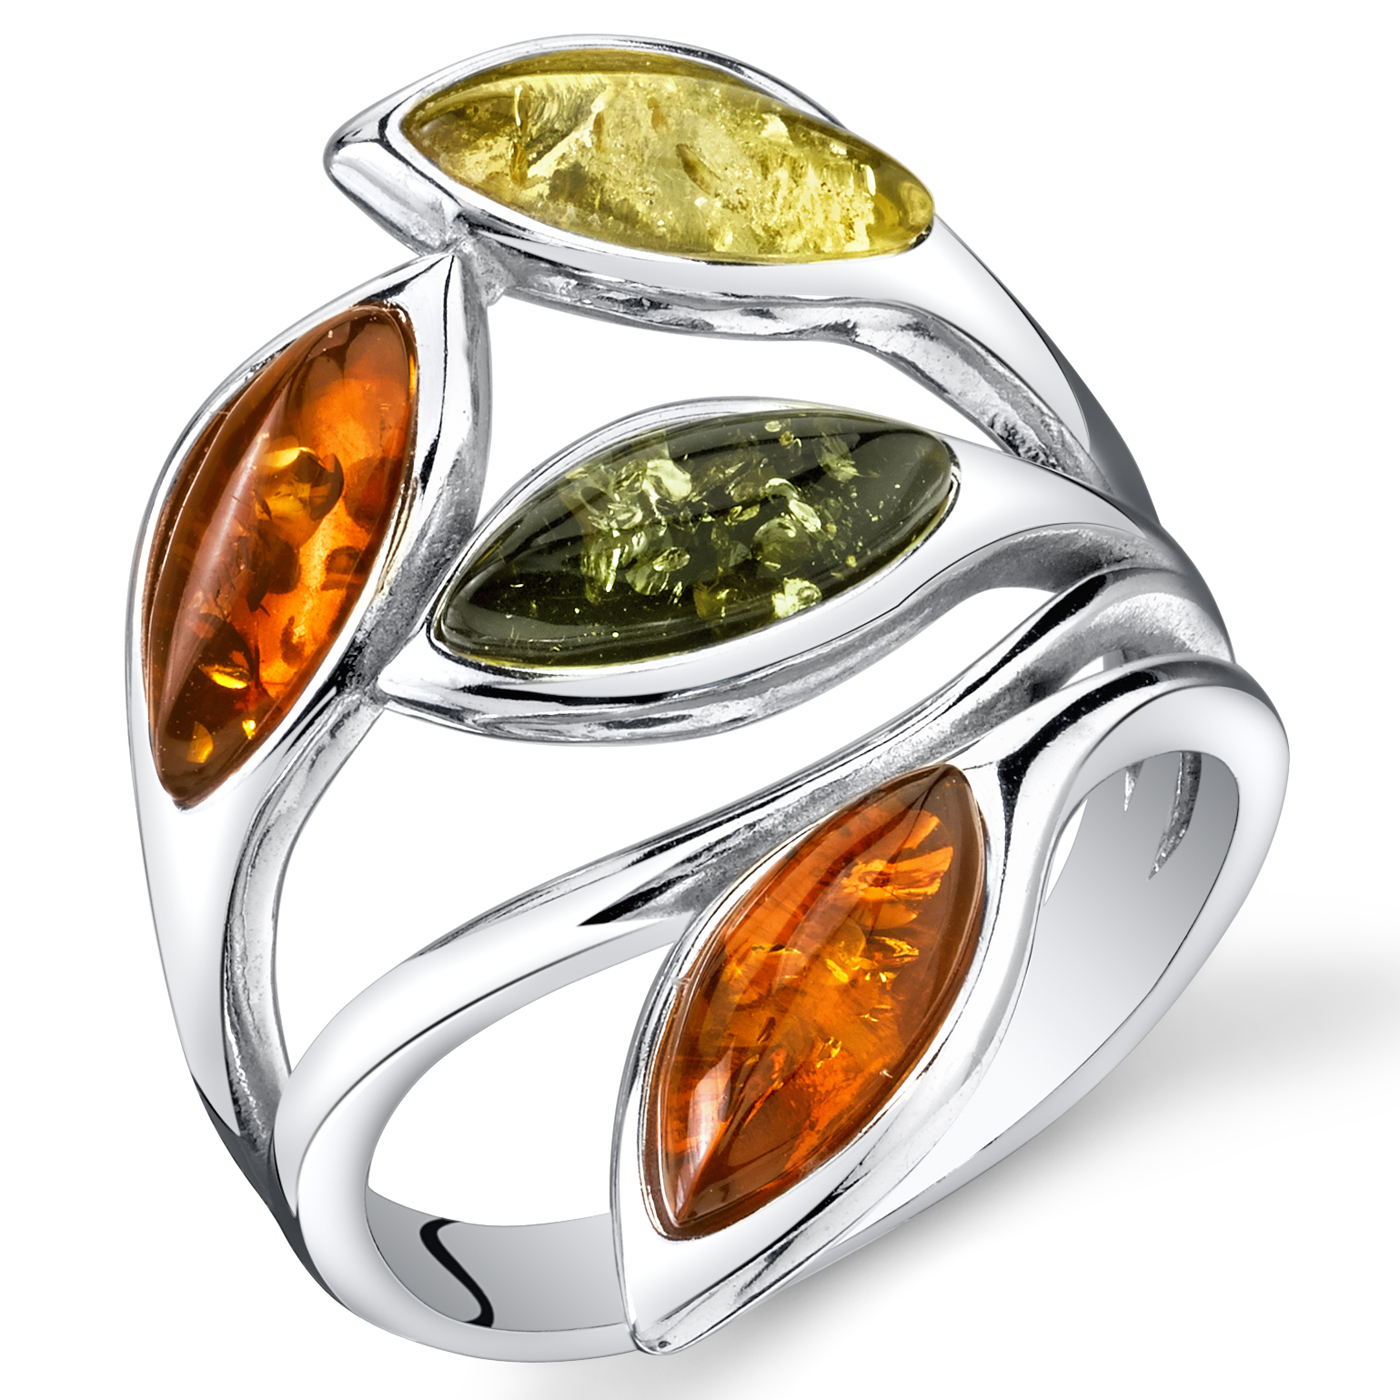 carat karat id engagement j sapphire at rings ring amber for and gold platinum org diamond jewelry sale